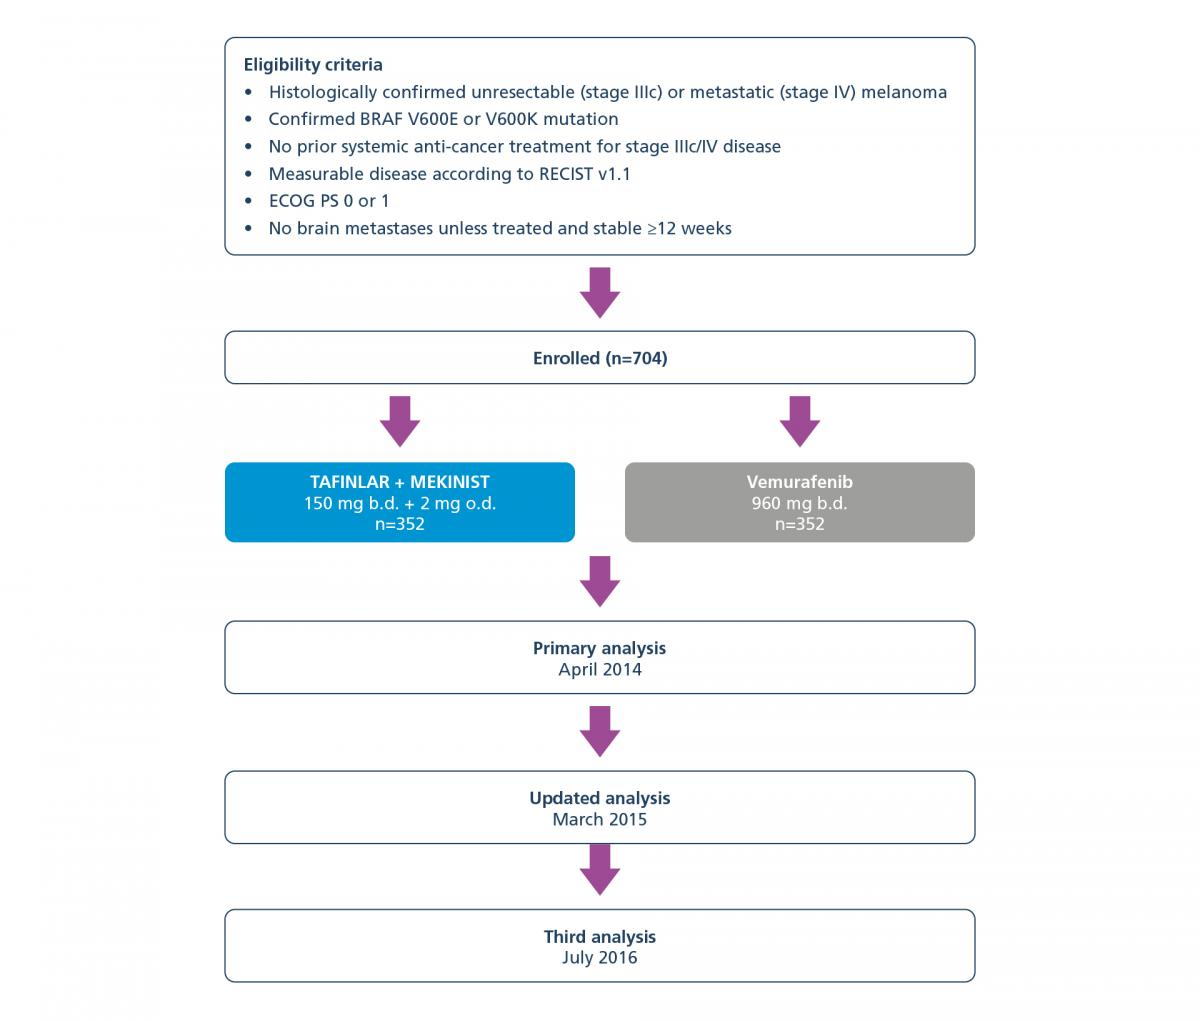 Diagram showing the COMBI-v trial design